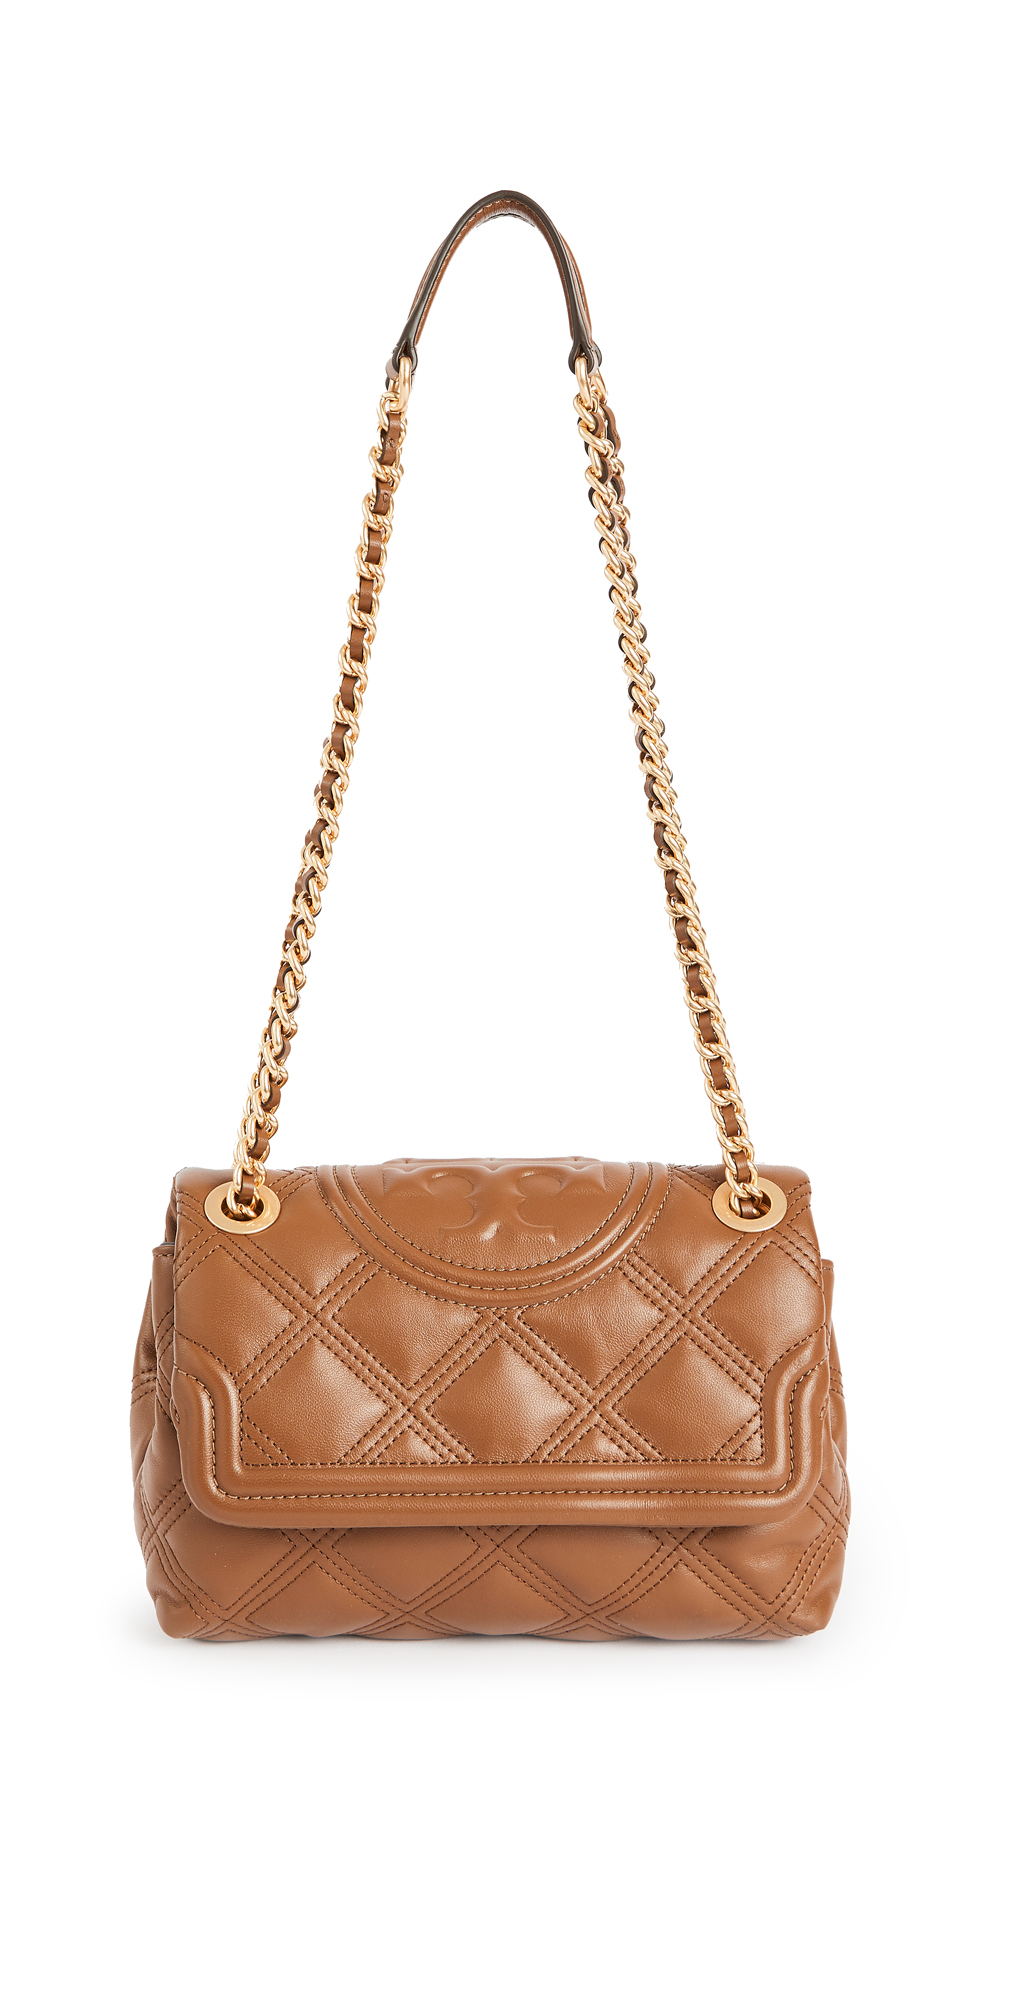 Tory Burch Fleming Soft Small Convertible Shoulder Bag